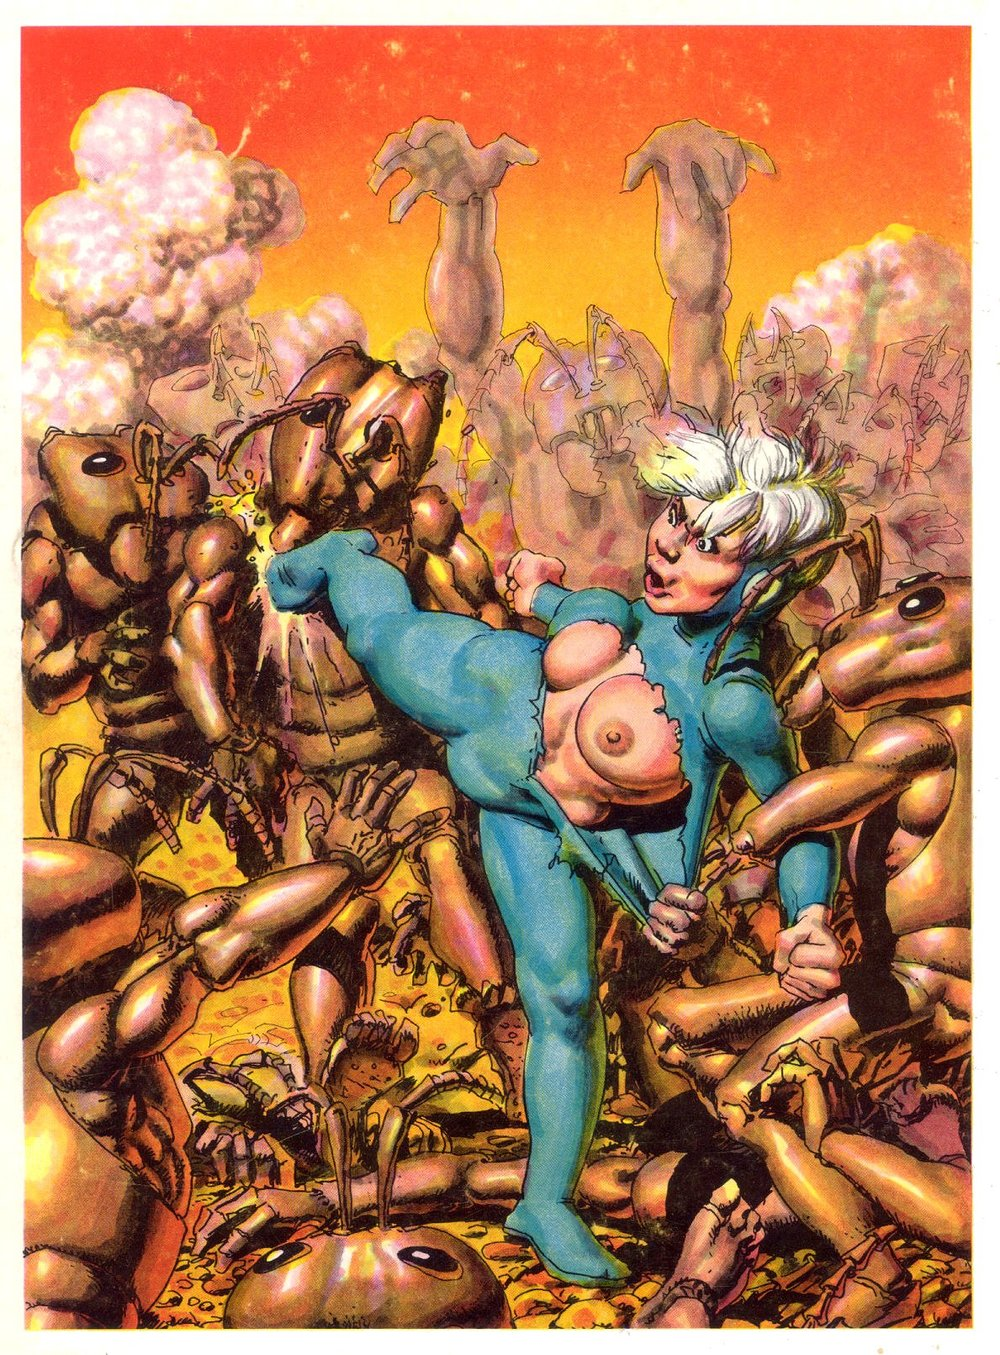 richard-corben_hot-stuf-n1_summer1974_back.jpg